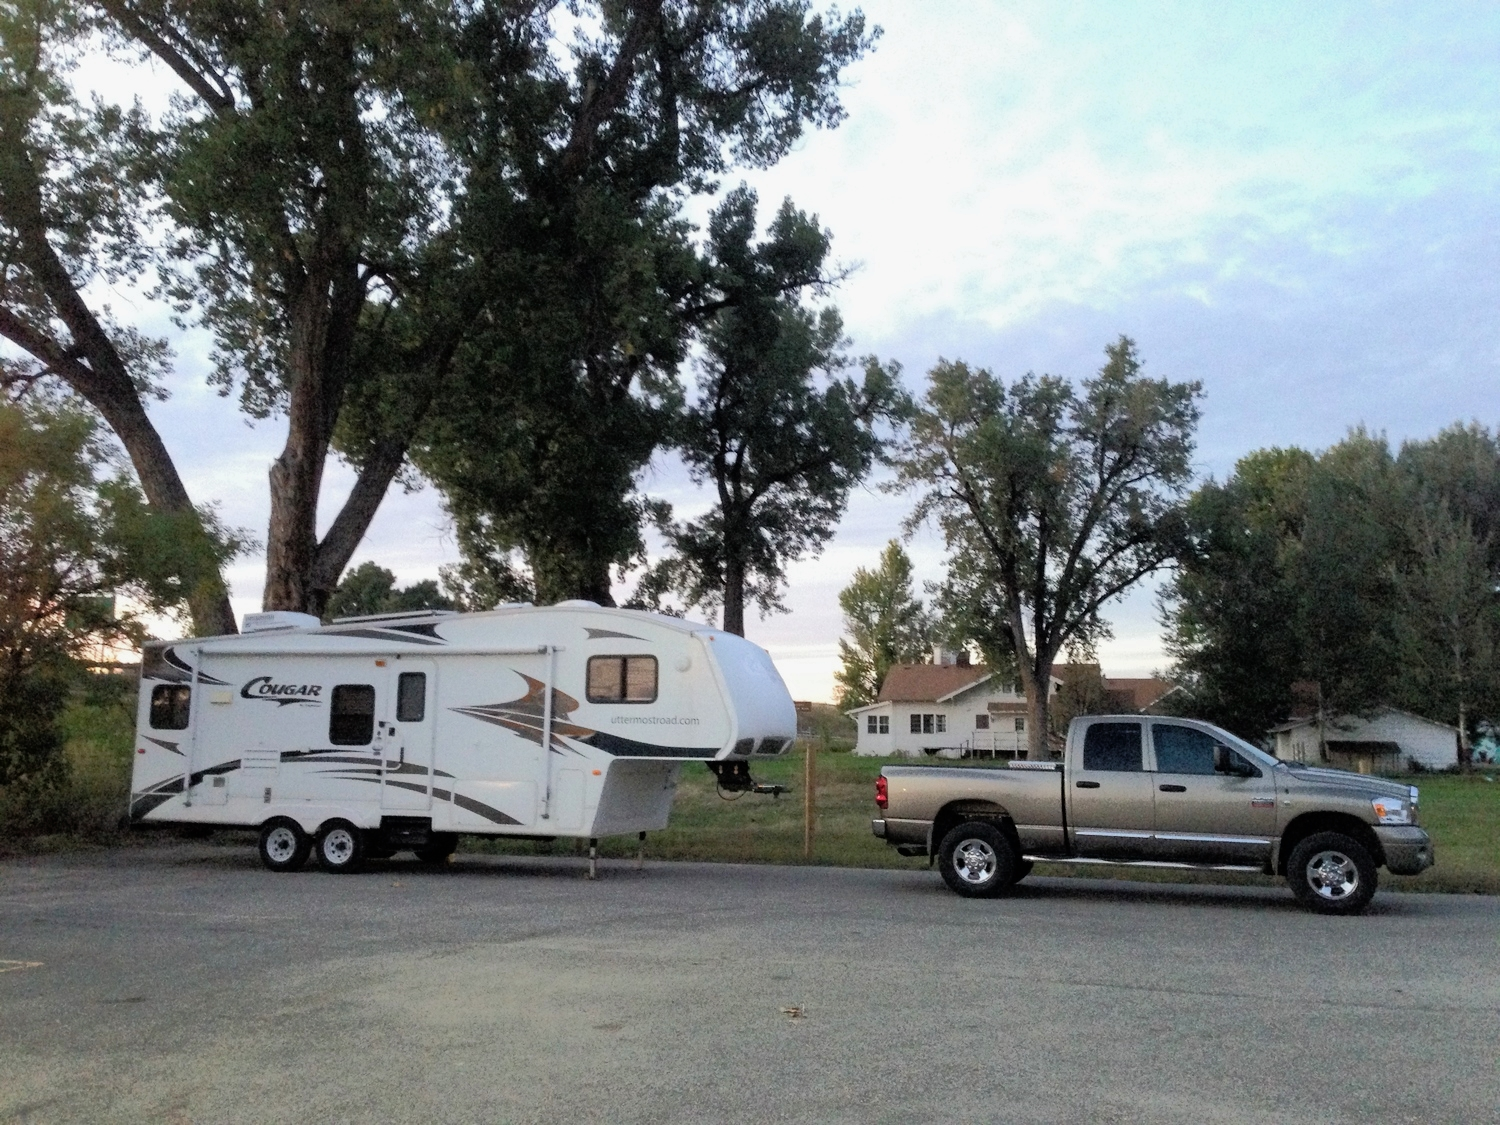 My campsite for tonight next to the Foursquare church in Crow Agency